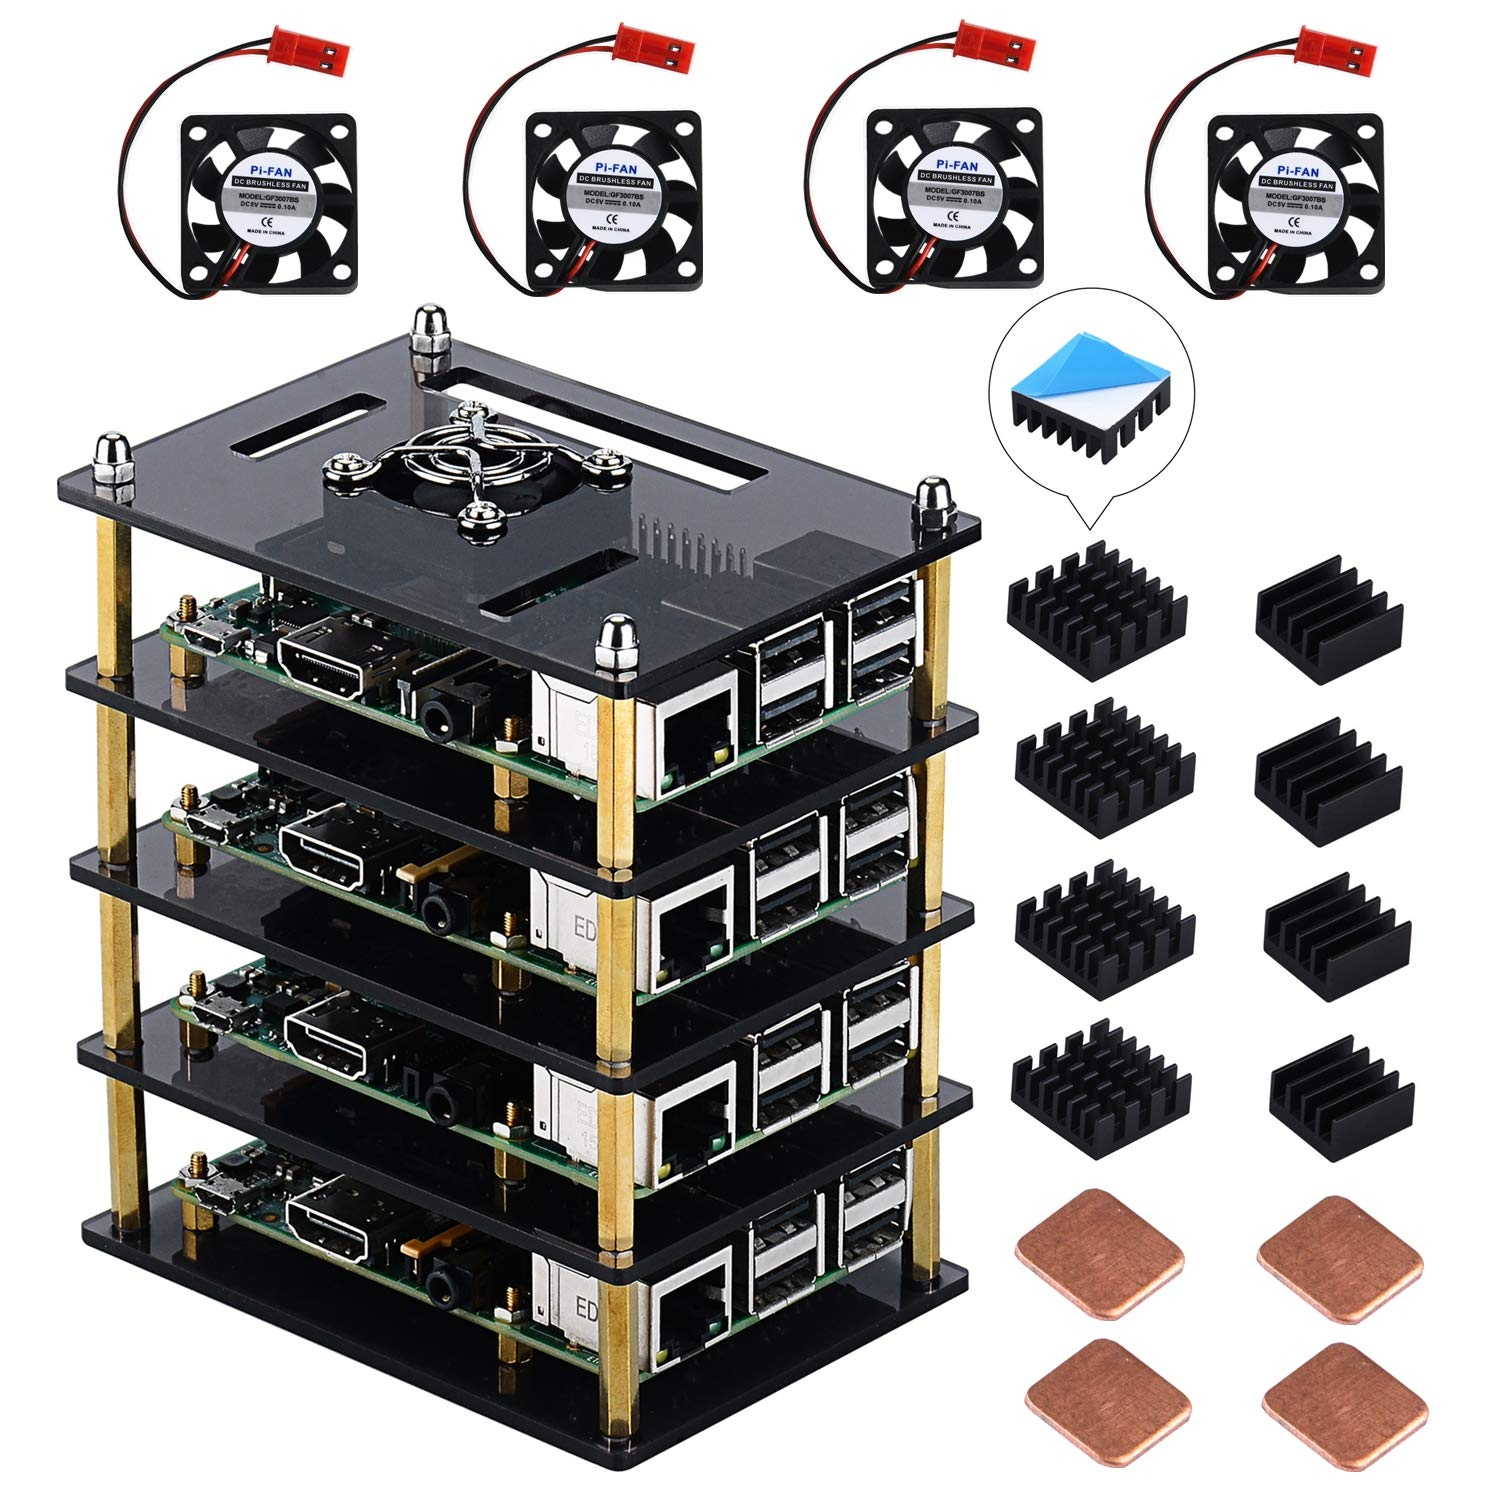 GeeekPi Raspberry Pi Cluster Case, Raspberry Pi Case with Cooling Fan and Raspberry Pi Heatsink, 4 Layers Acrylic Case Stackable Case for Raspberry Pi 3 Model B+, Raspberry Pi 3/2 Model B